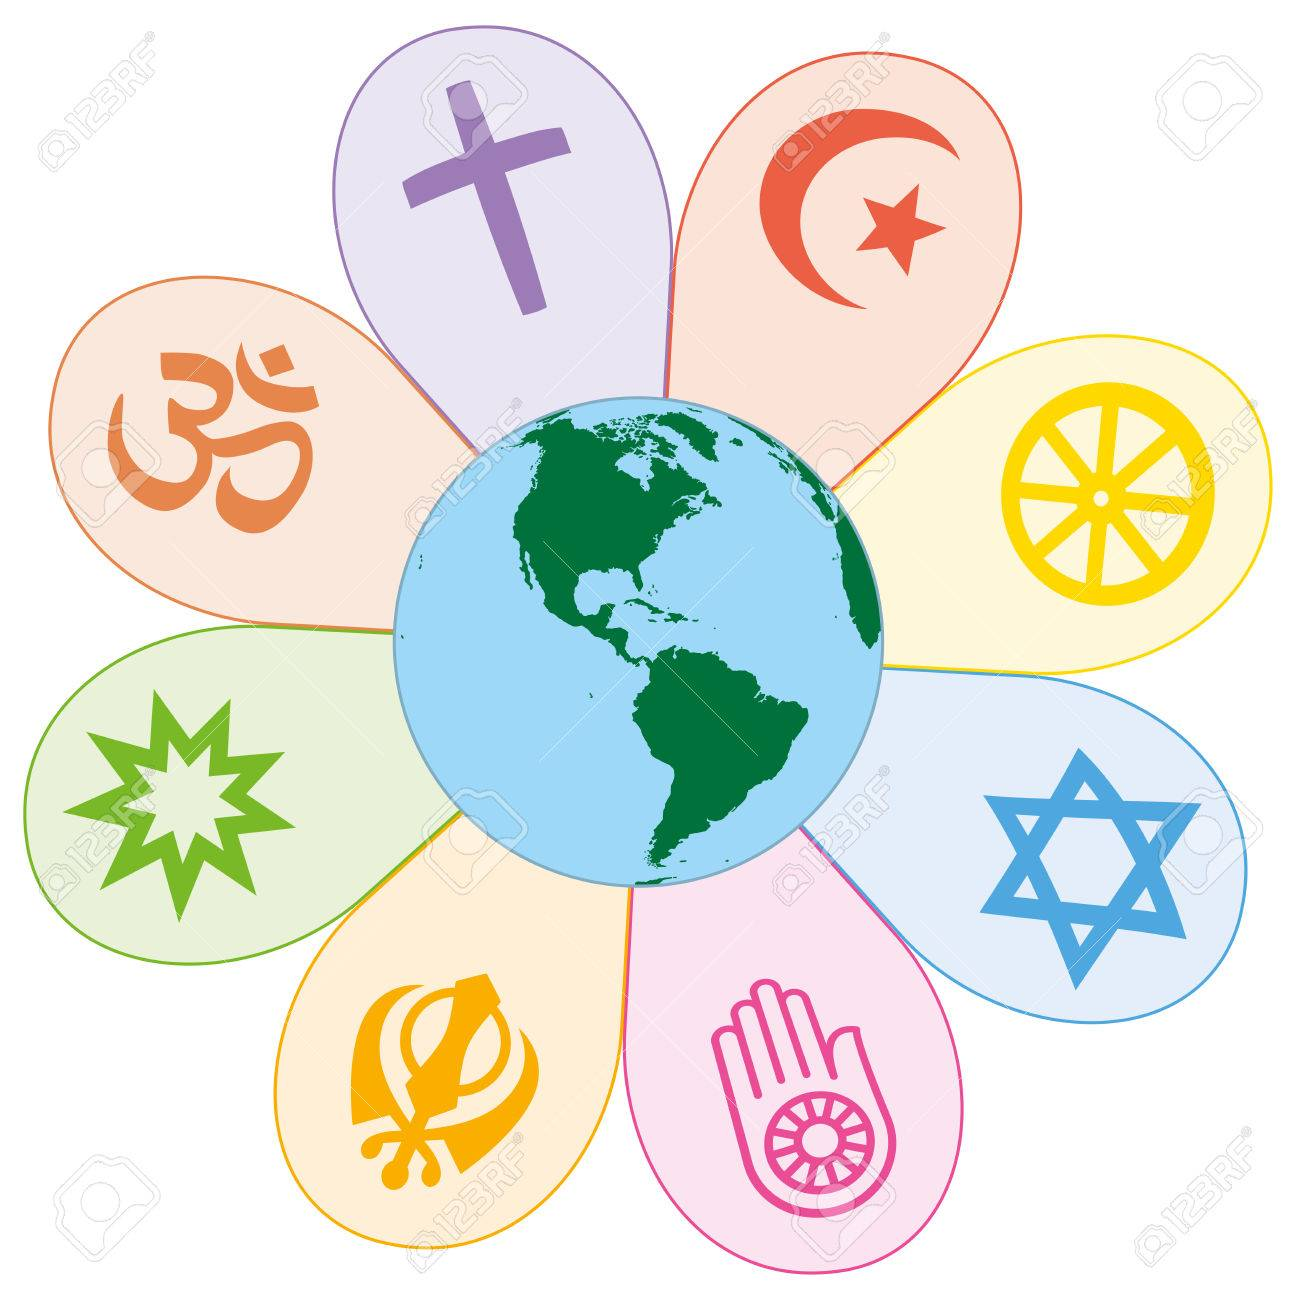 World religions united on a colorful flower with planet earth in center. Isolated vector illustration on white background. Standard-Bild - 48052933